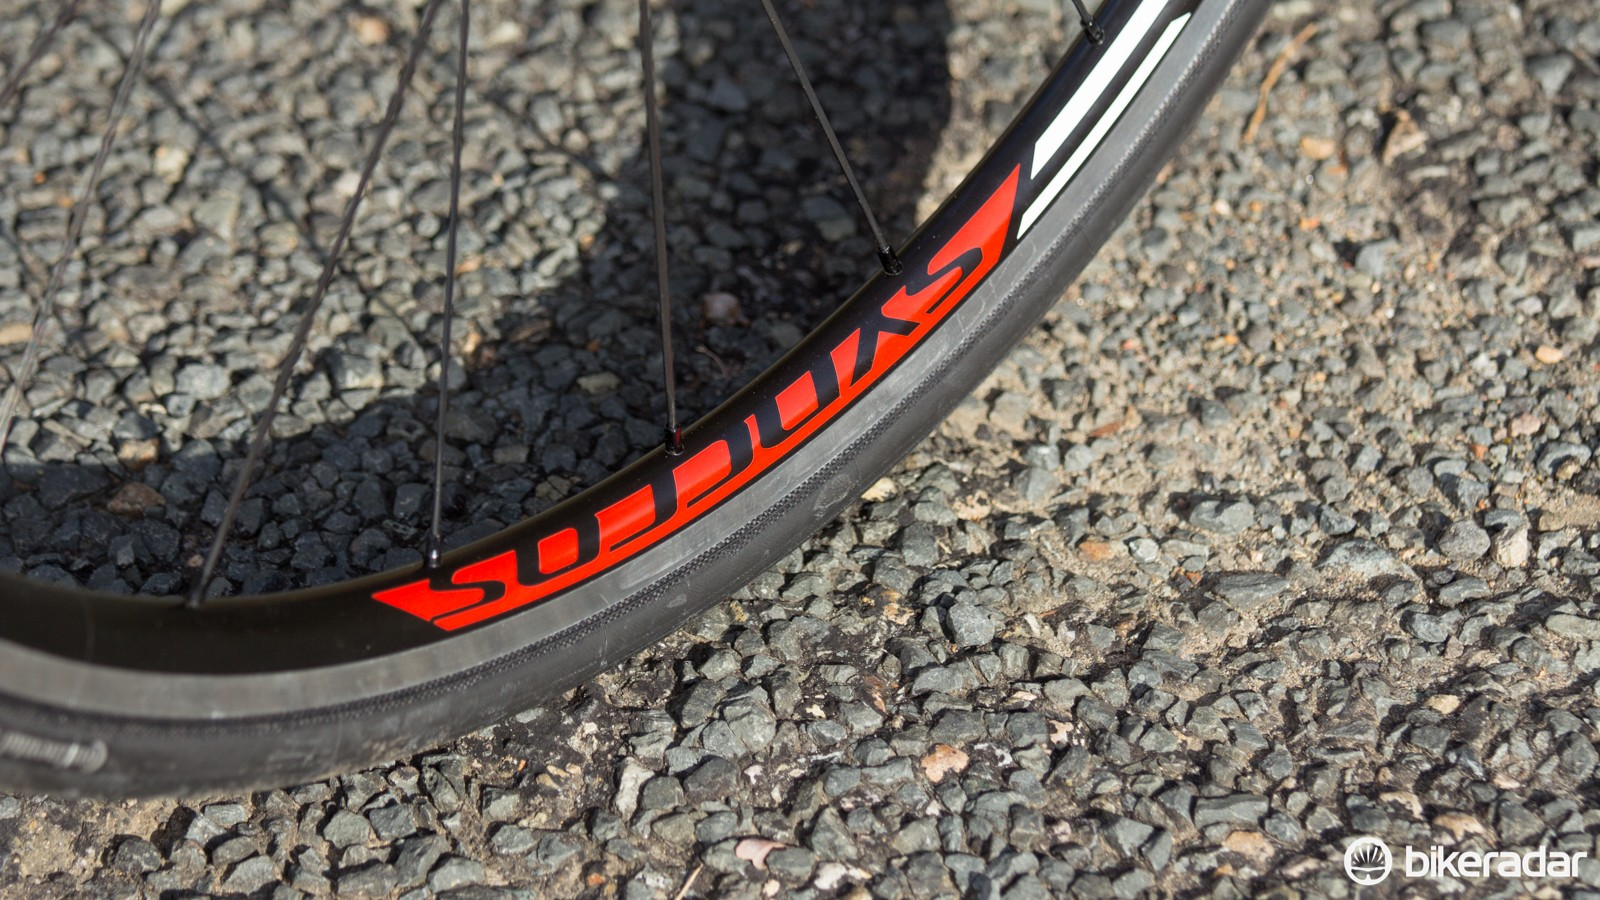 With an 18mm internal rim width, the Syncros-branded wheels help to take the sting from poor road surfaces